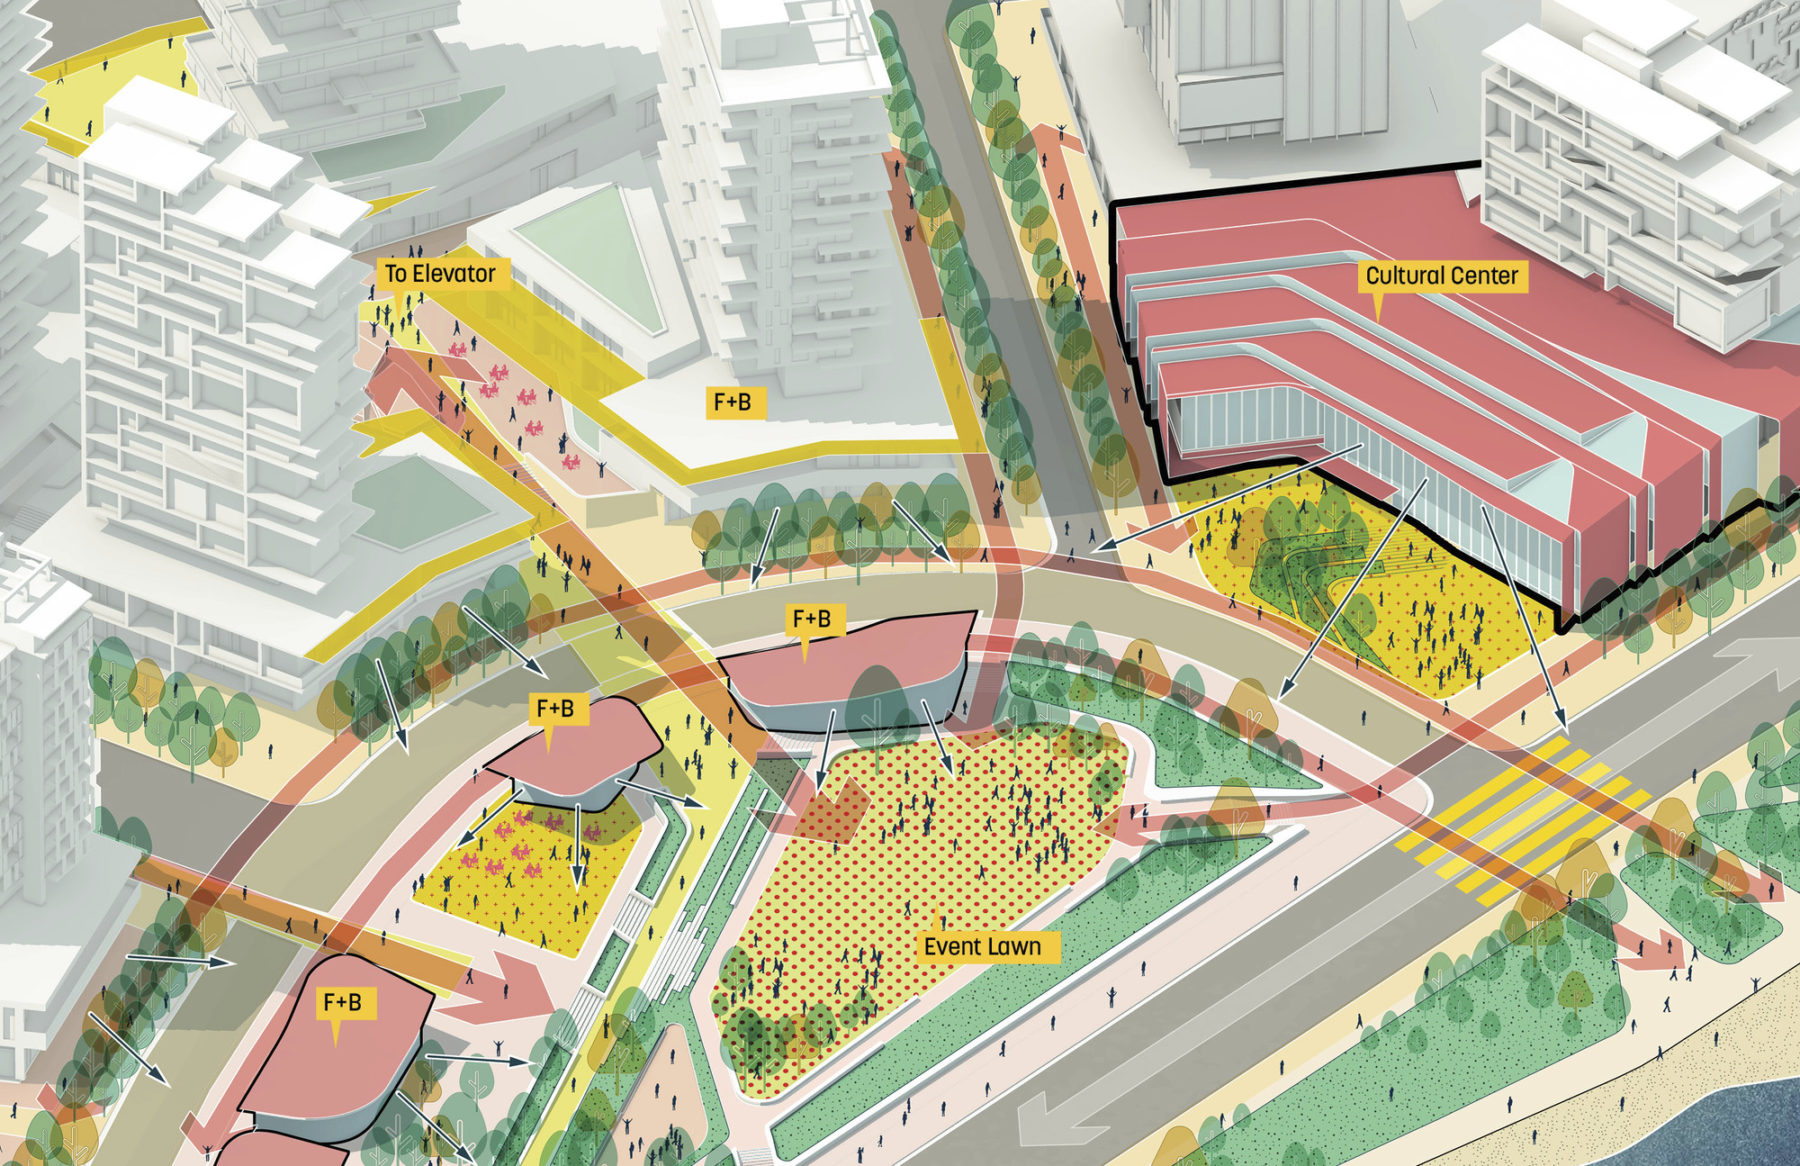 diagram of event lawn and cultural center